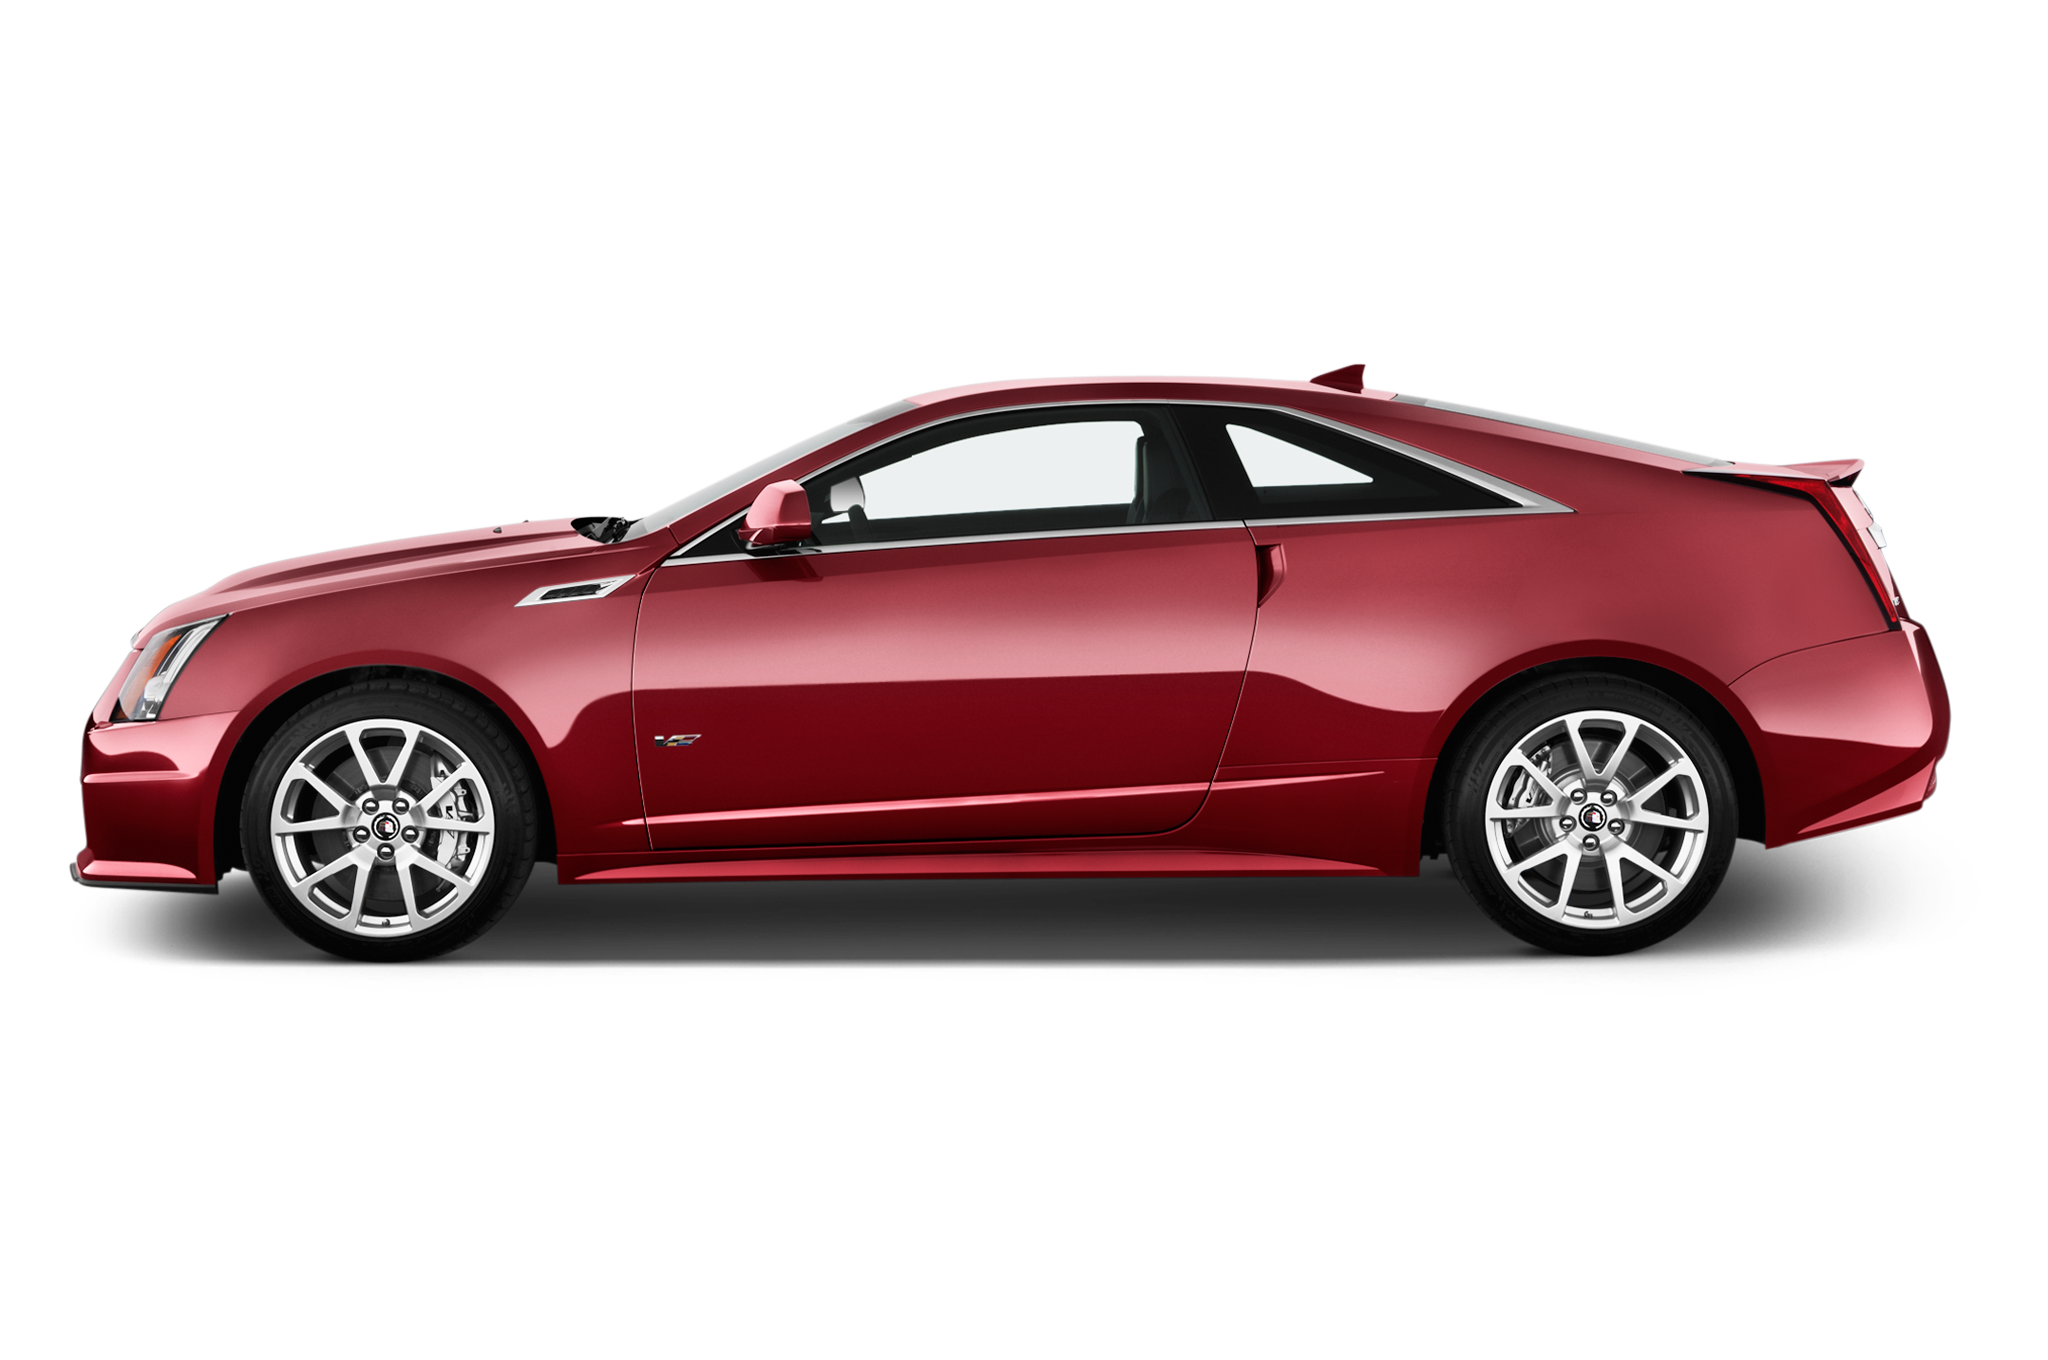 2015 Cadillac Cts V Coupe Special Edition Announced